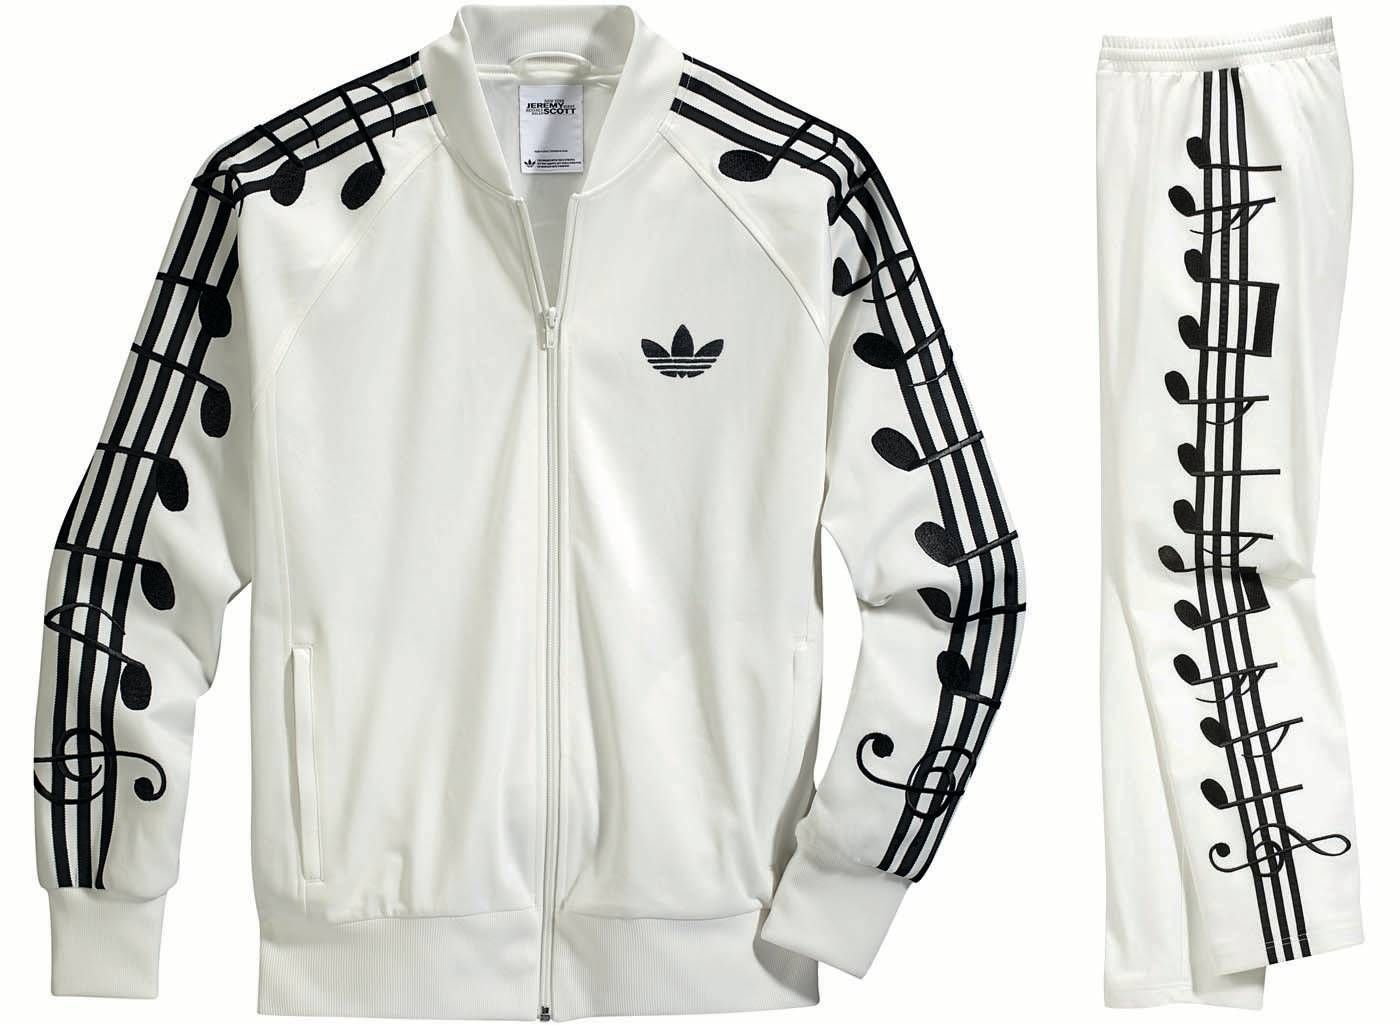 adidas Originals Music Note Tracksuits Rock Super Bowl XLVI Halftime Show  (3)